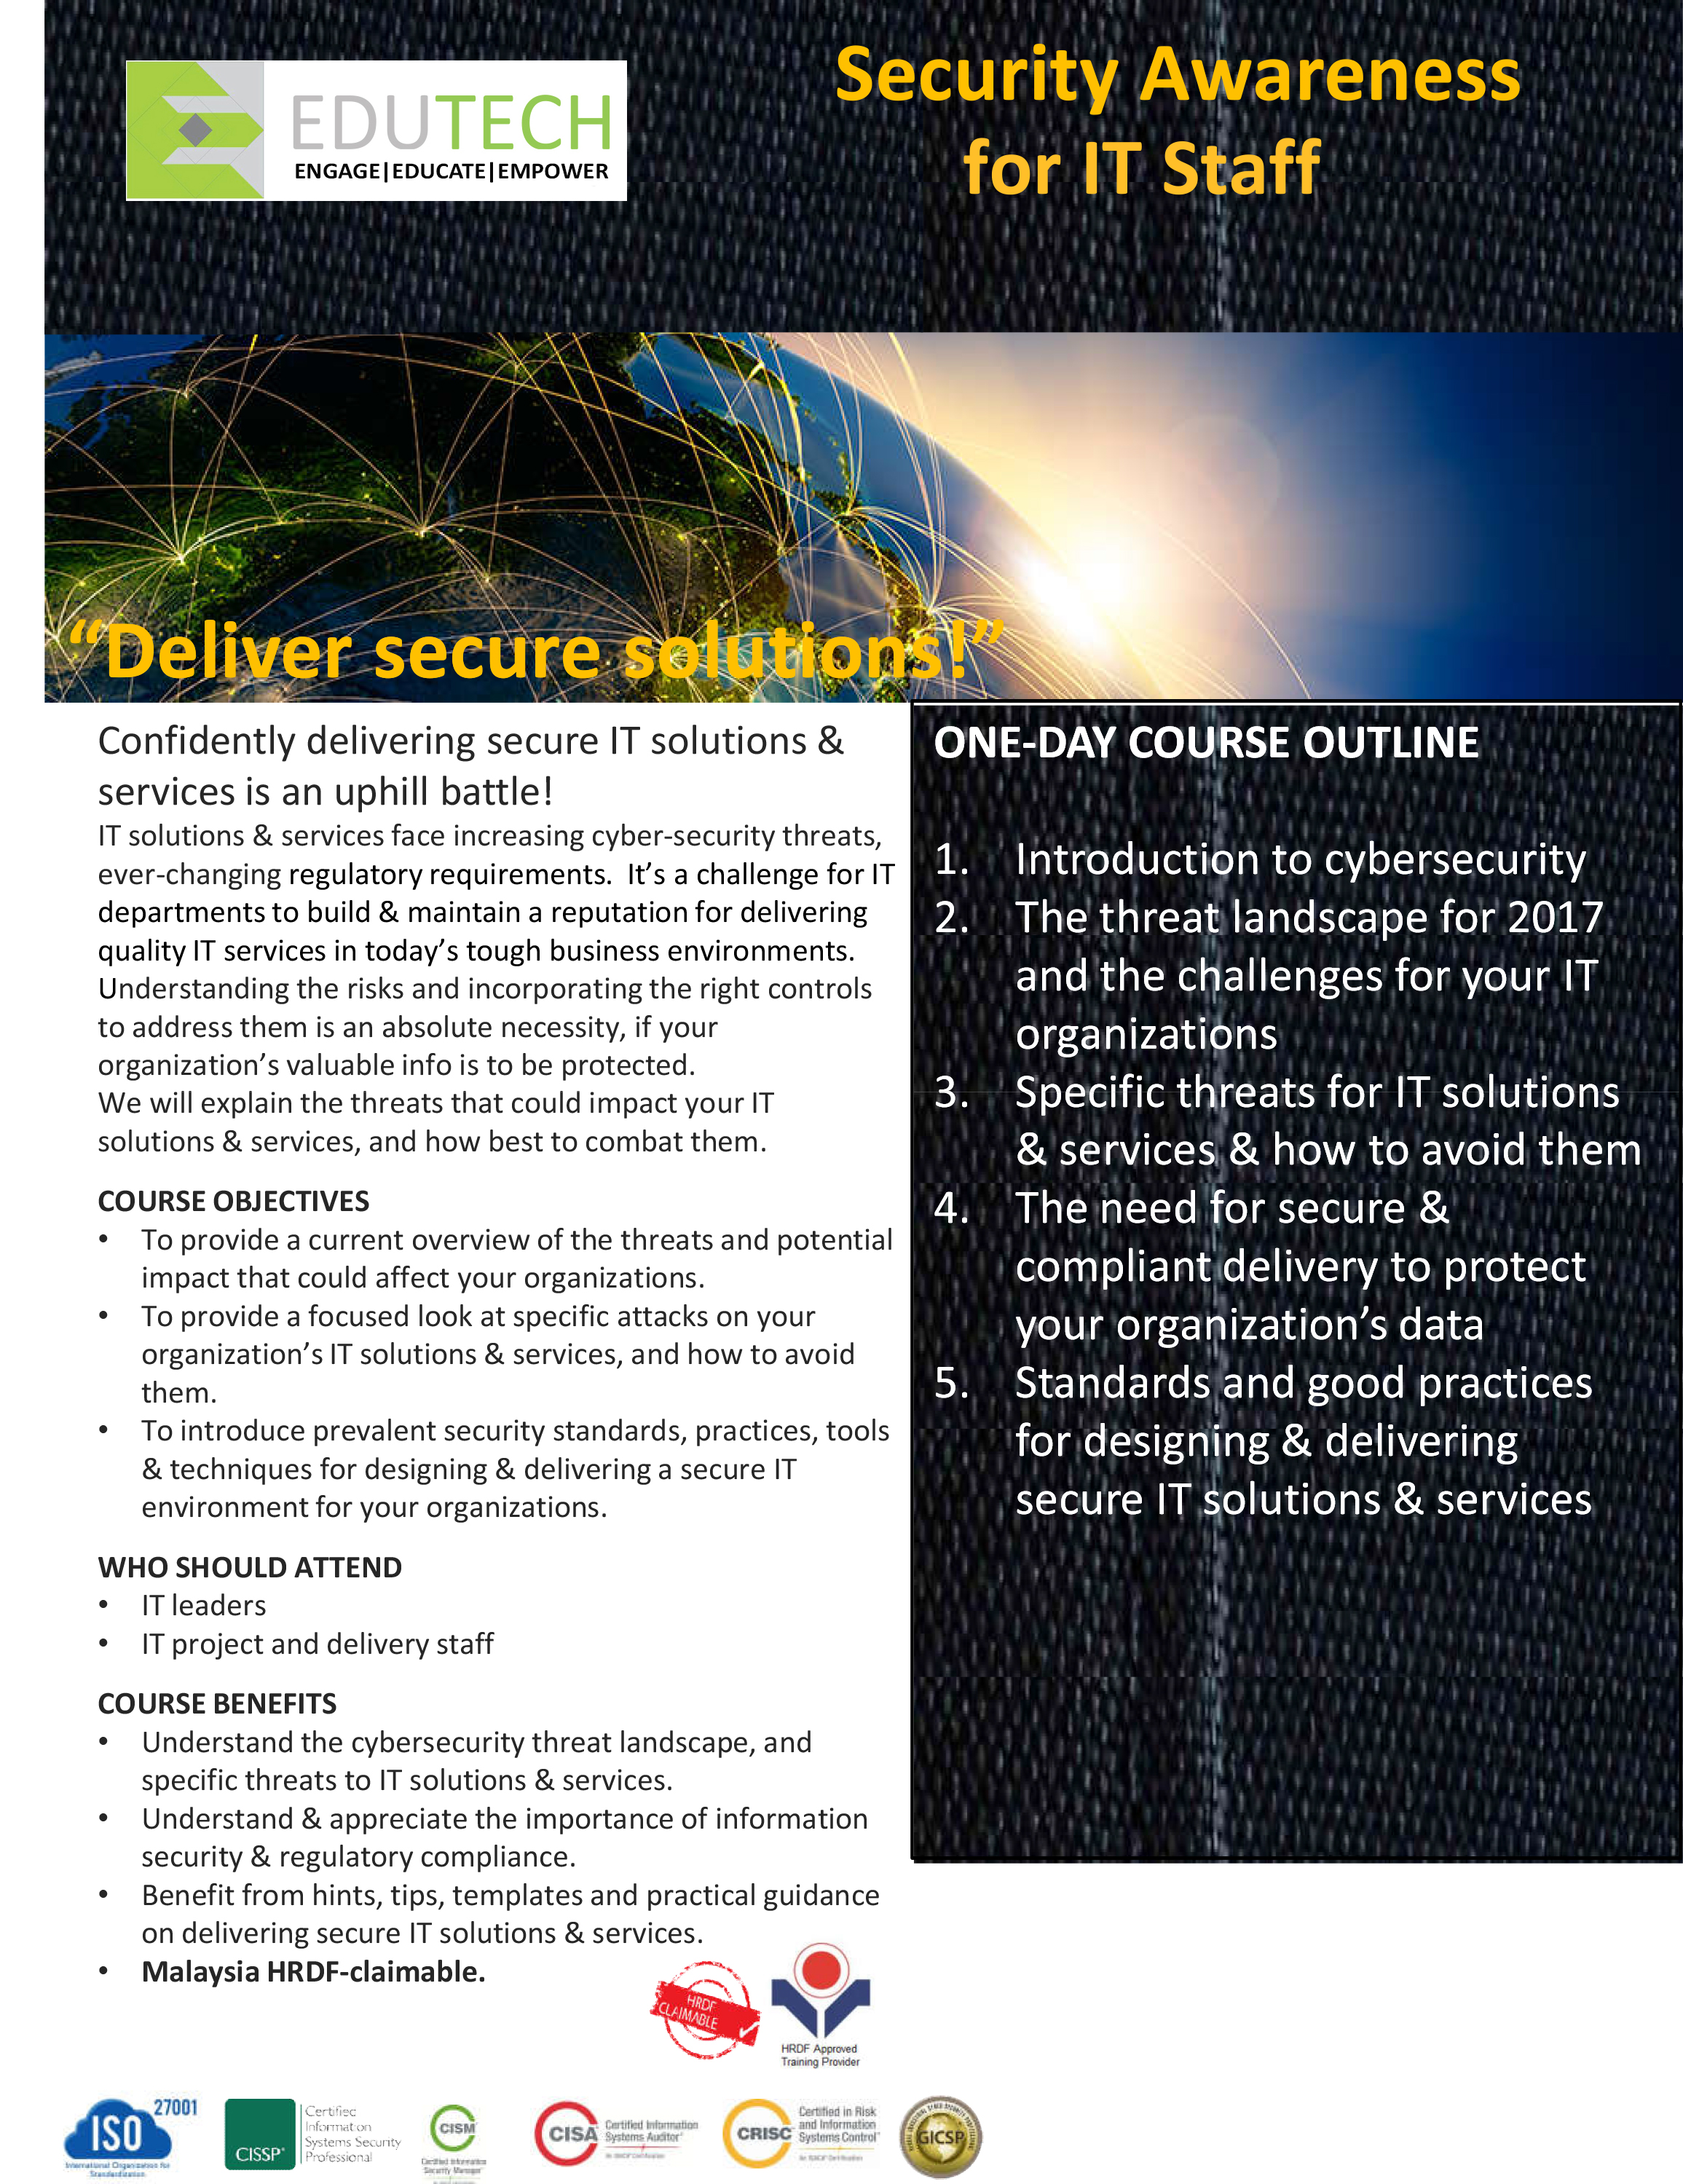 Security Awareness for IT Professionals